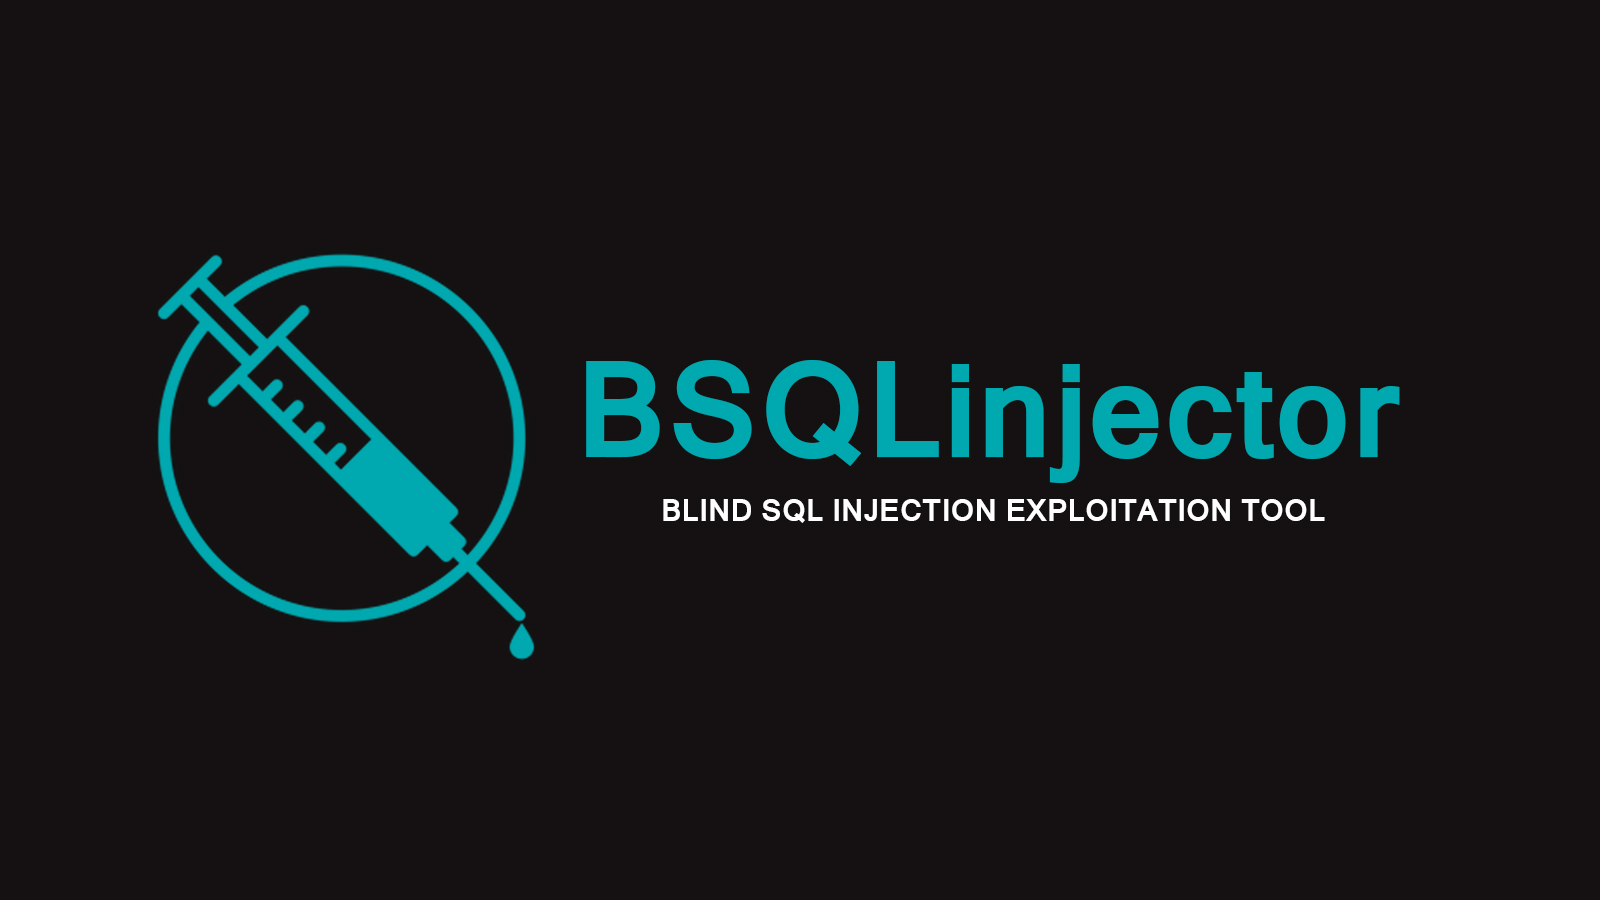 BSQLinjector - Blind SQL Injection Exploitation Tool